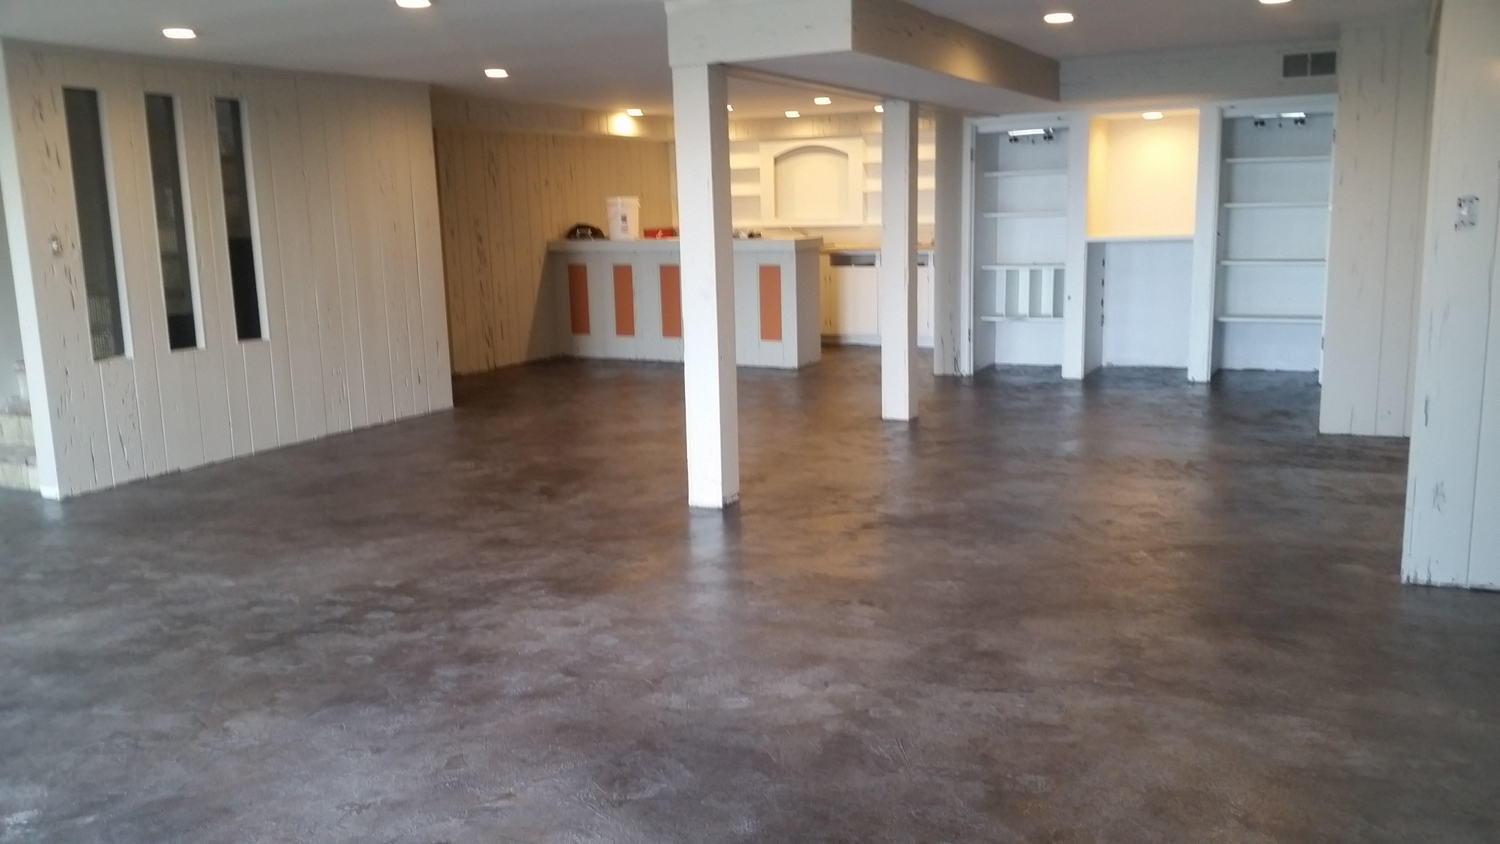 Micro-Topping on a finished basement floor. Renovations like this are popular when homeowners decide to expand their living space into the basement to accommodate growing families and entertaining needs. Job By Concrete Ink - click image to view their profile.